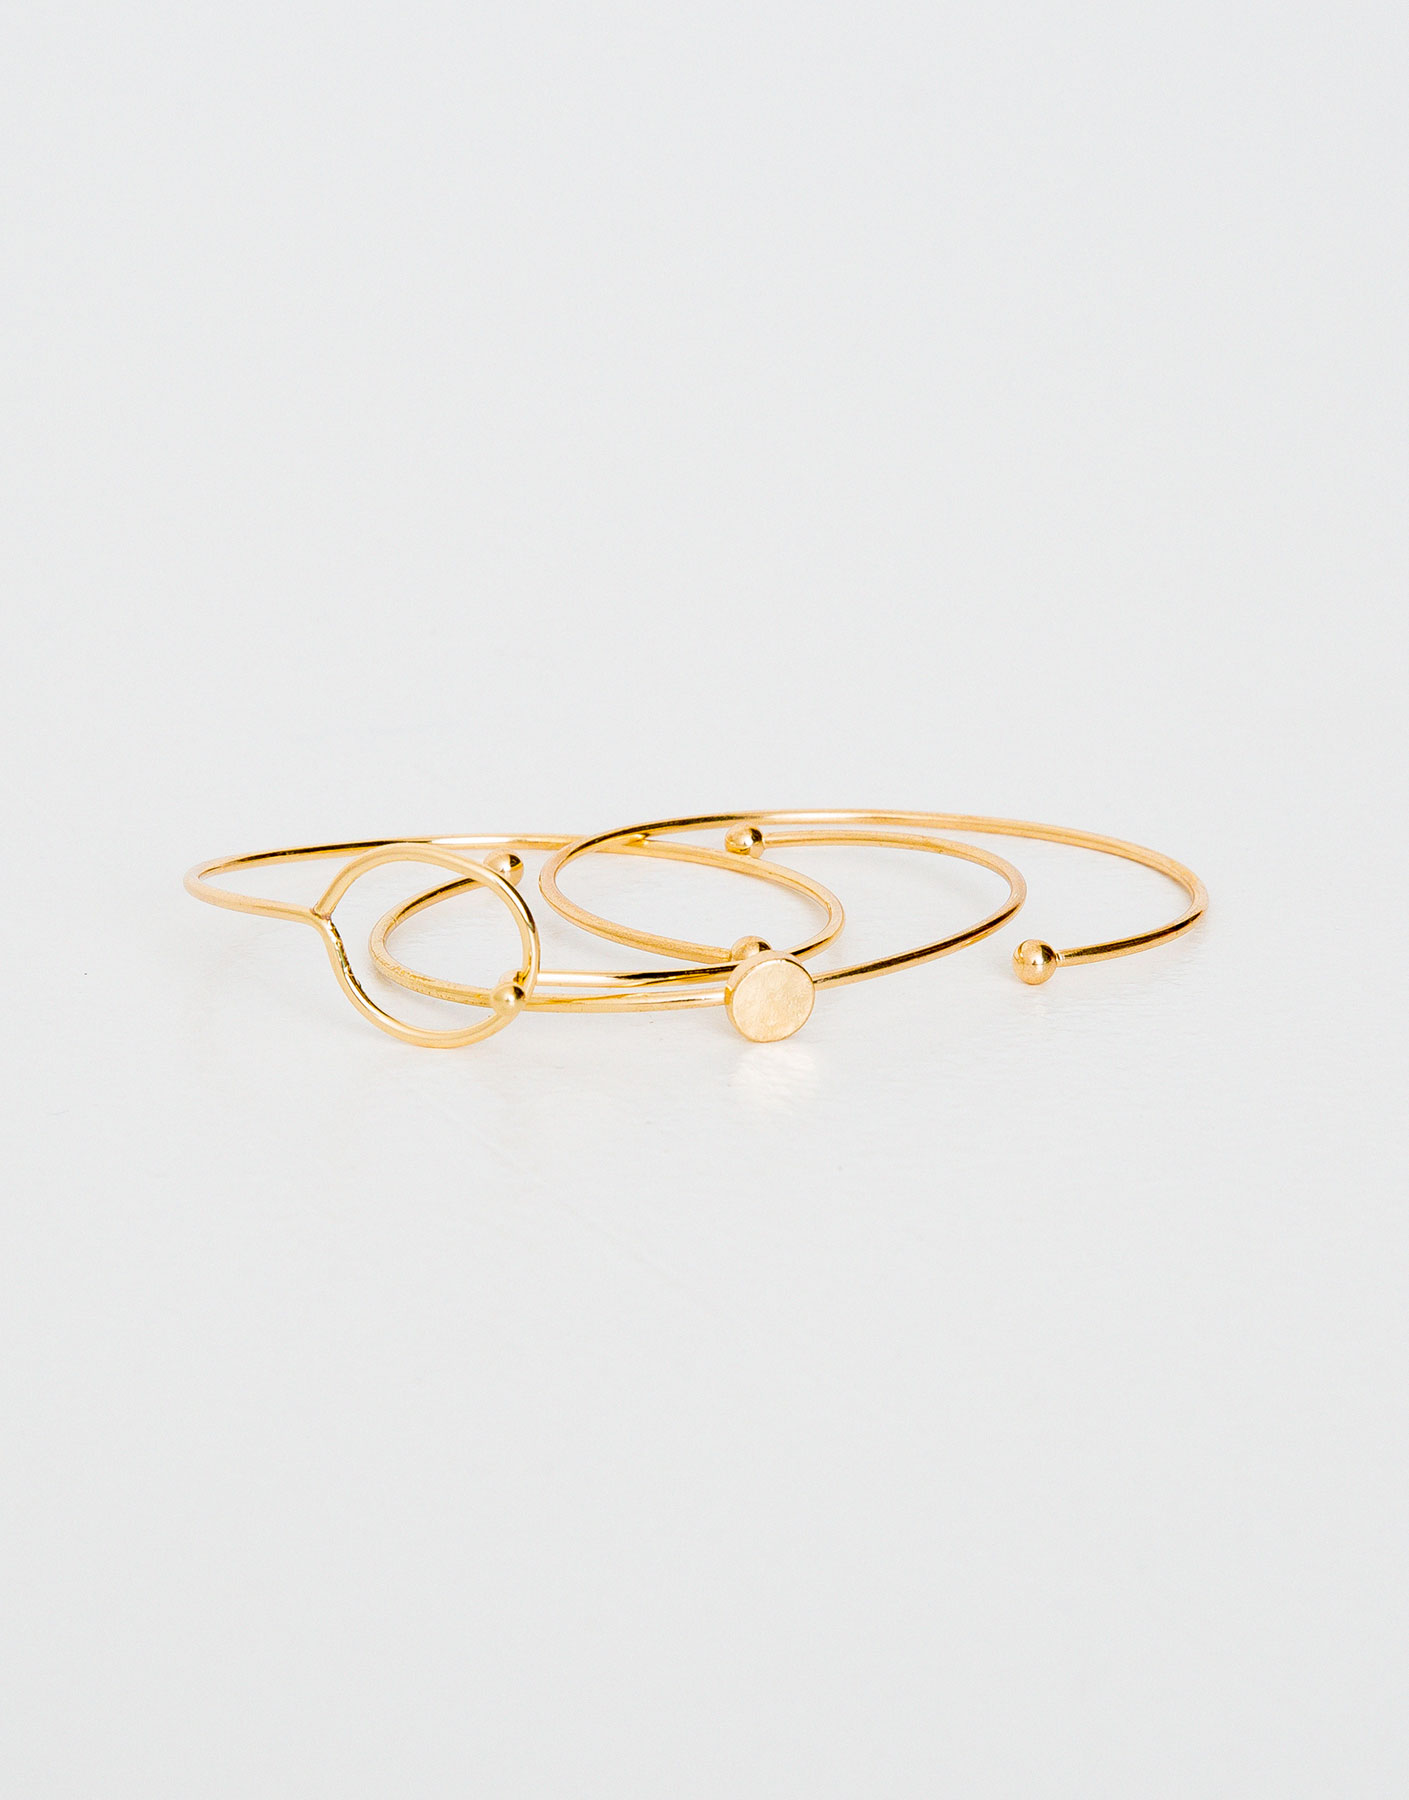 Pack of 3 thin bangle bracelets